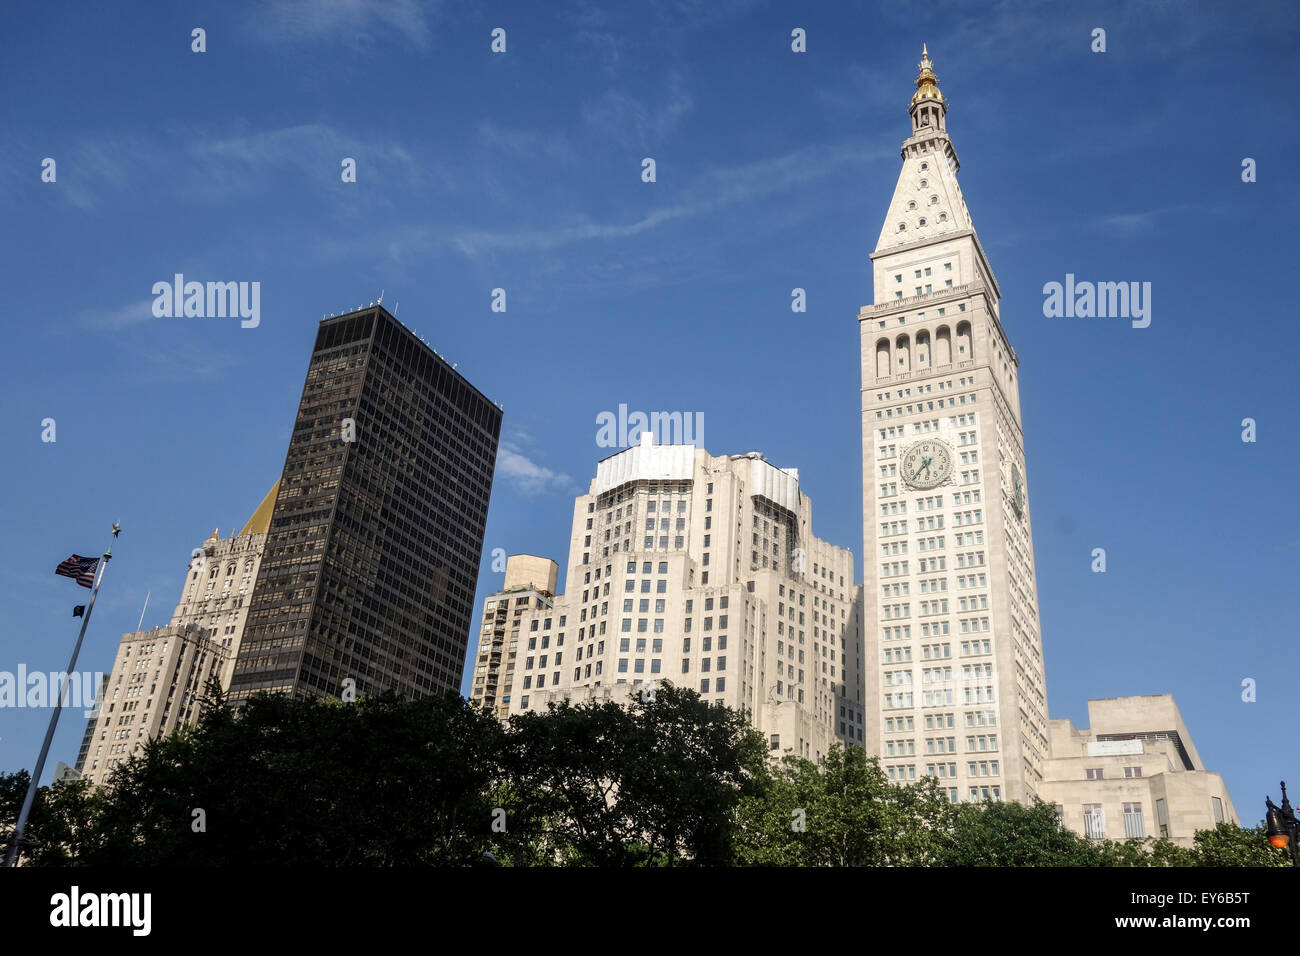 Seagram Building Stock Photos & Seagram Building Stock Images - Alamy